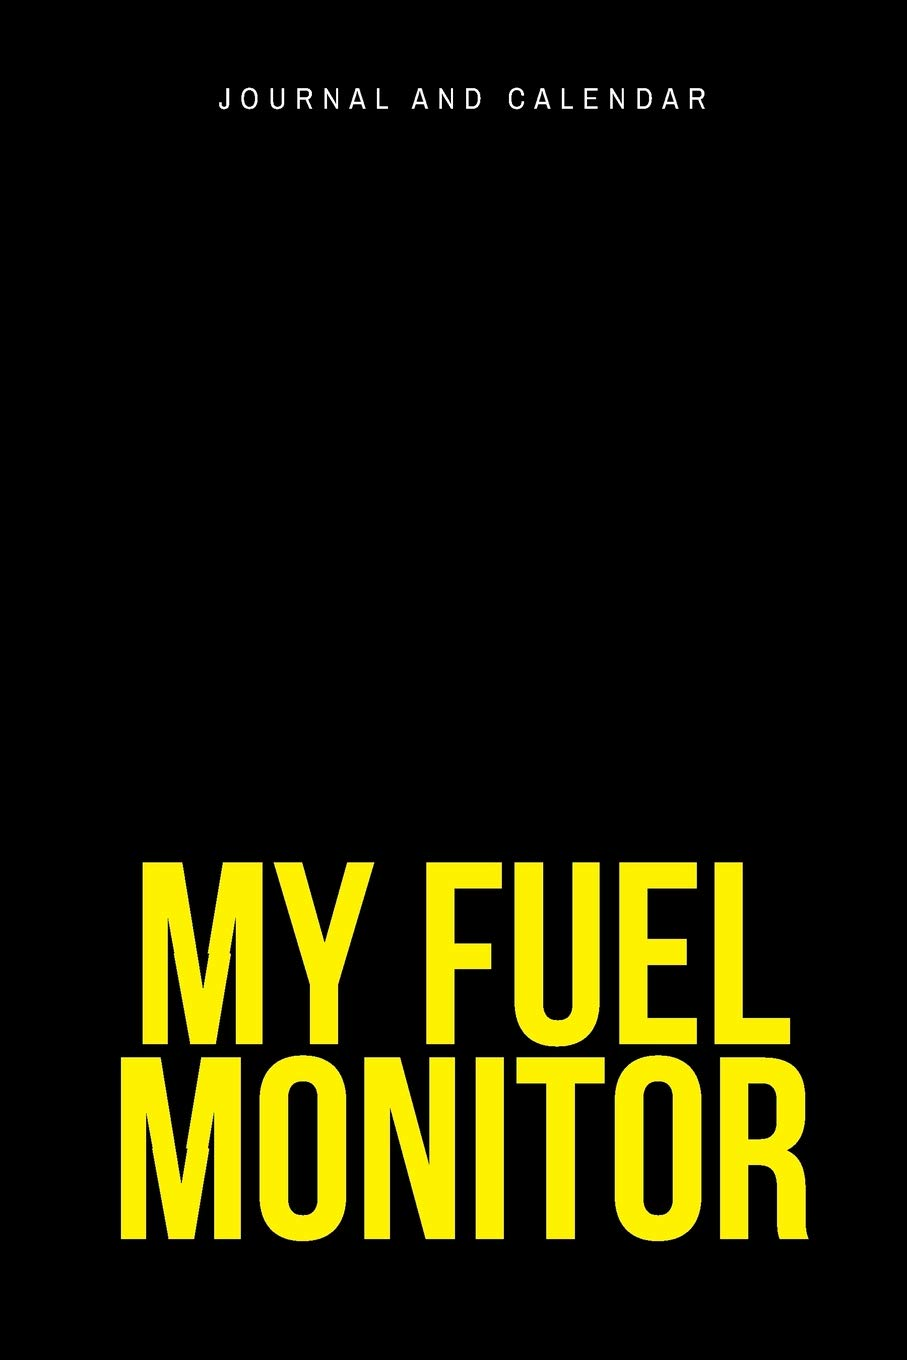 My Fuel Monitor: Blank Lined Journal With Calendar For Fuel